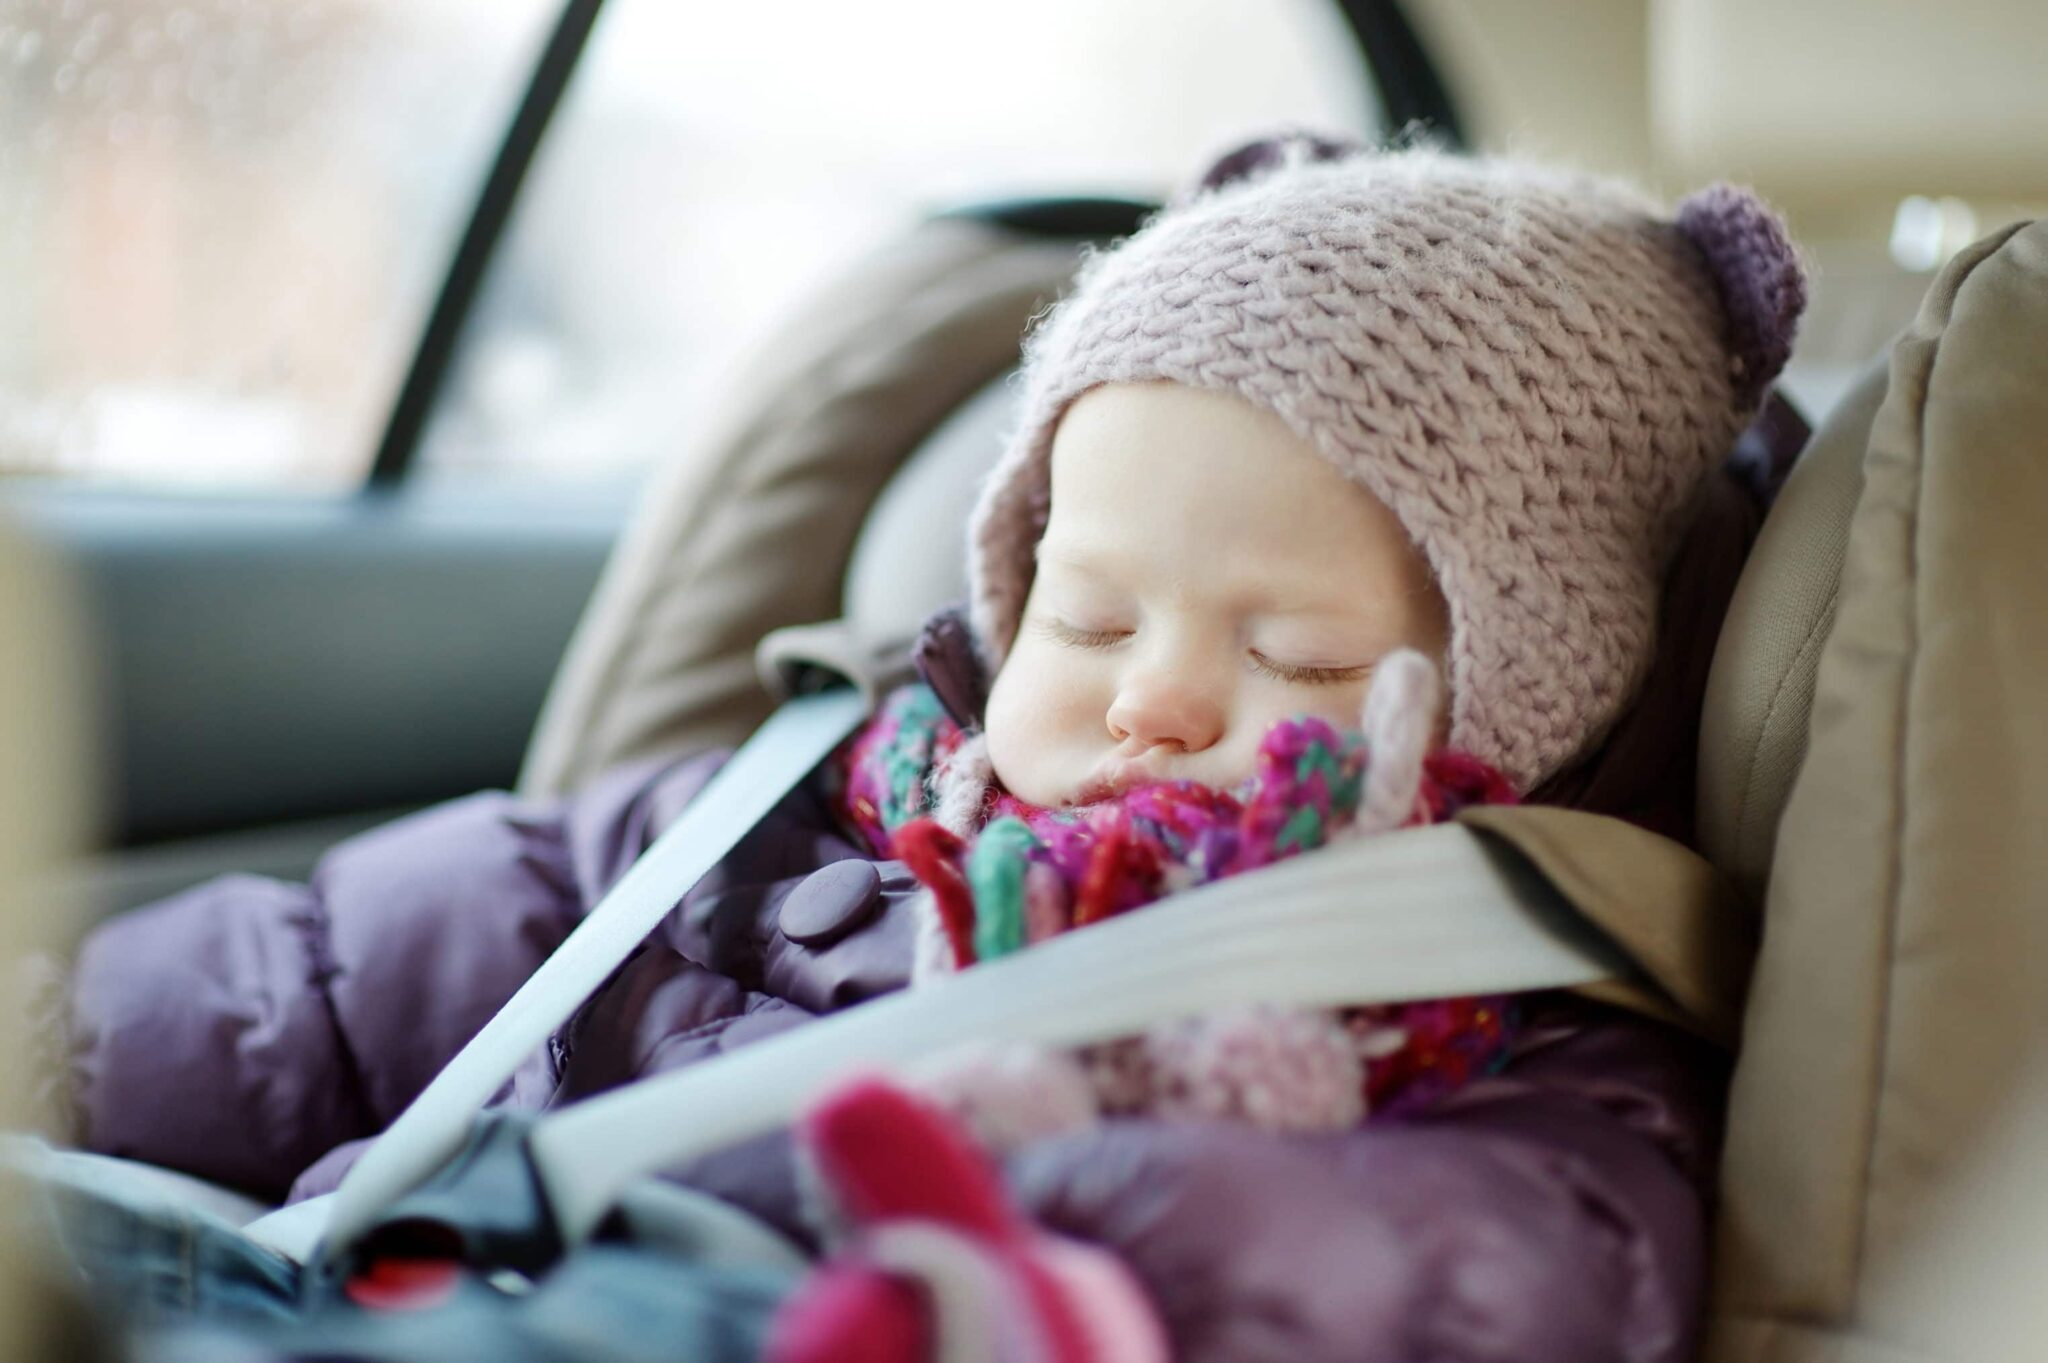 Infant in winter coat and hat in a car seat